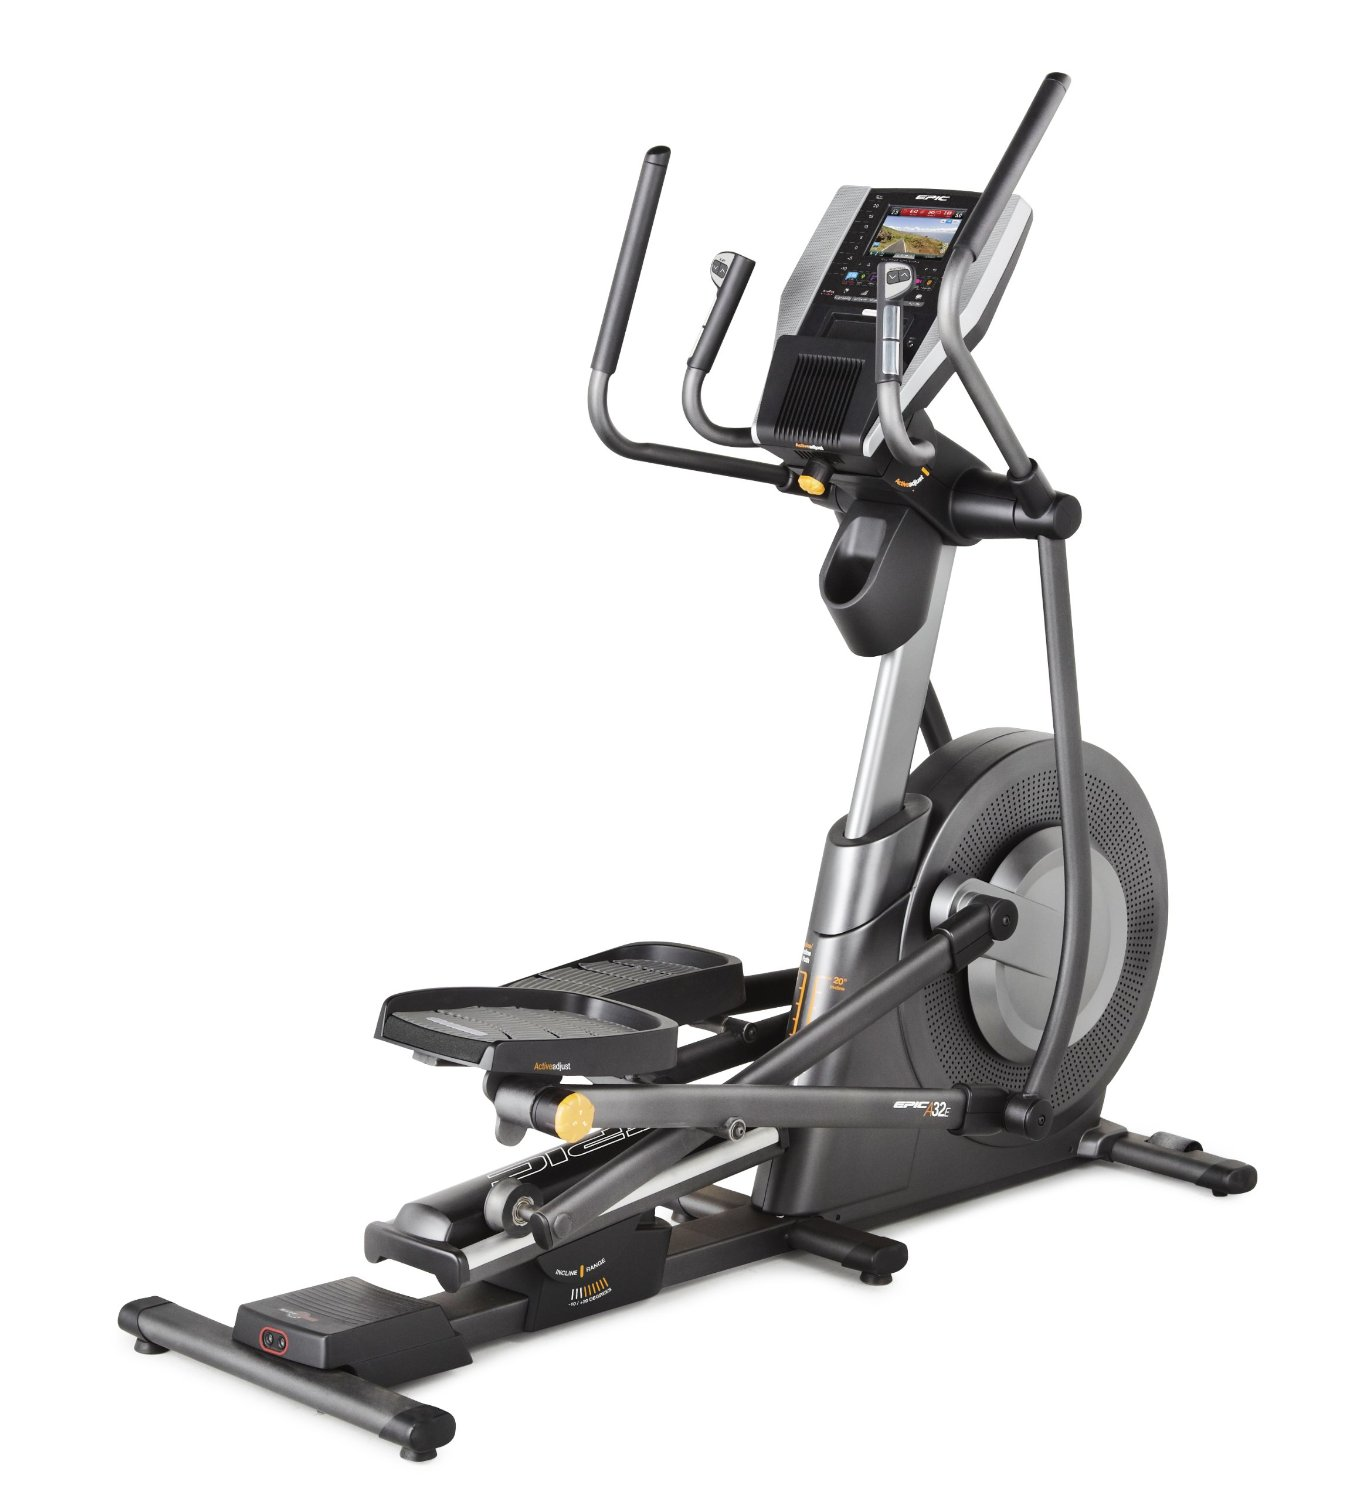 Epic Elliptical Reviews – Which Is The Best – A30E, A32E or A35E?